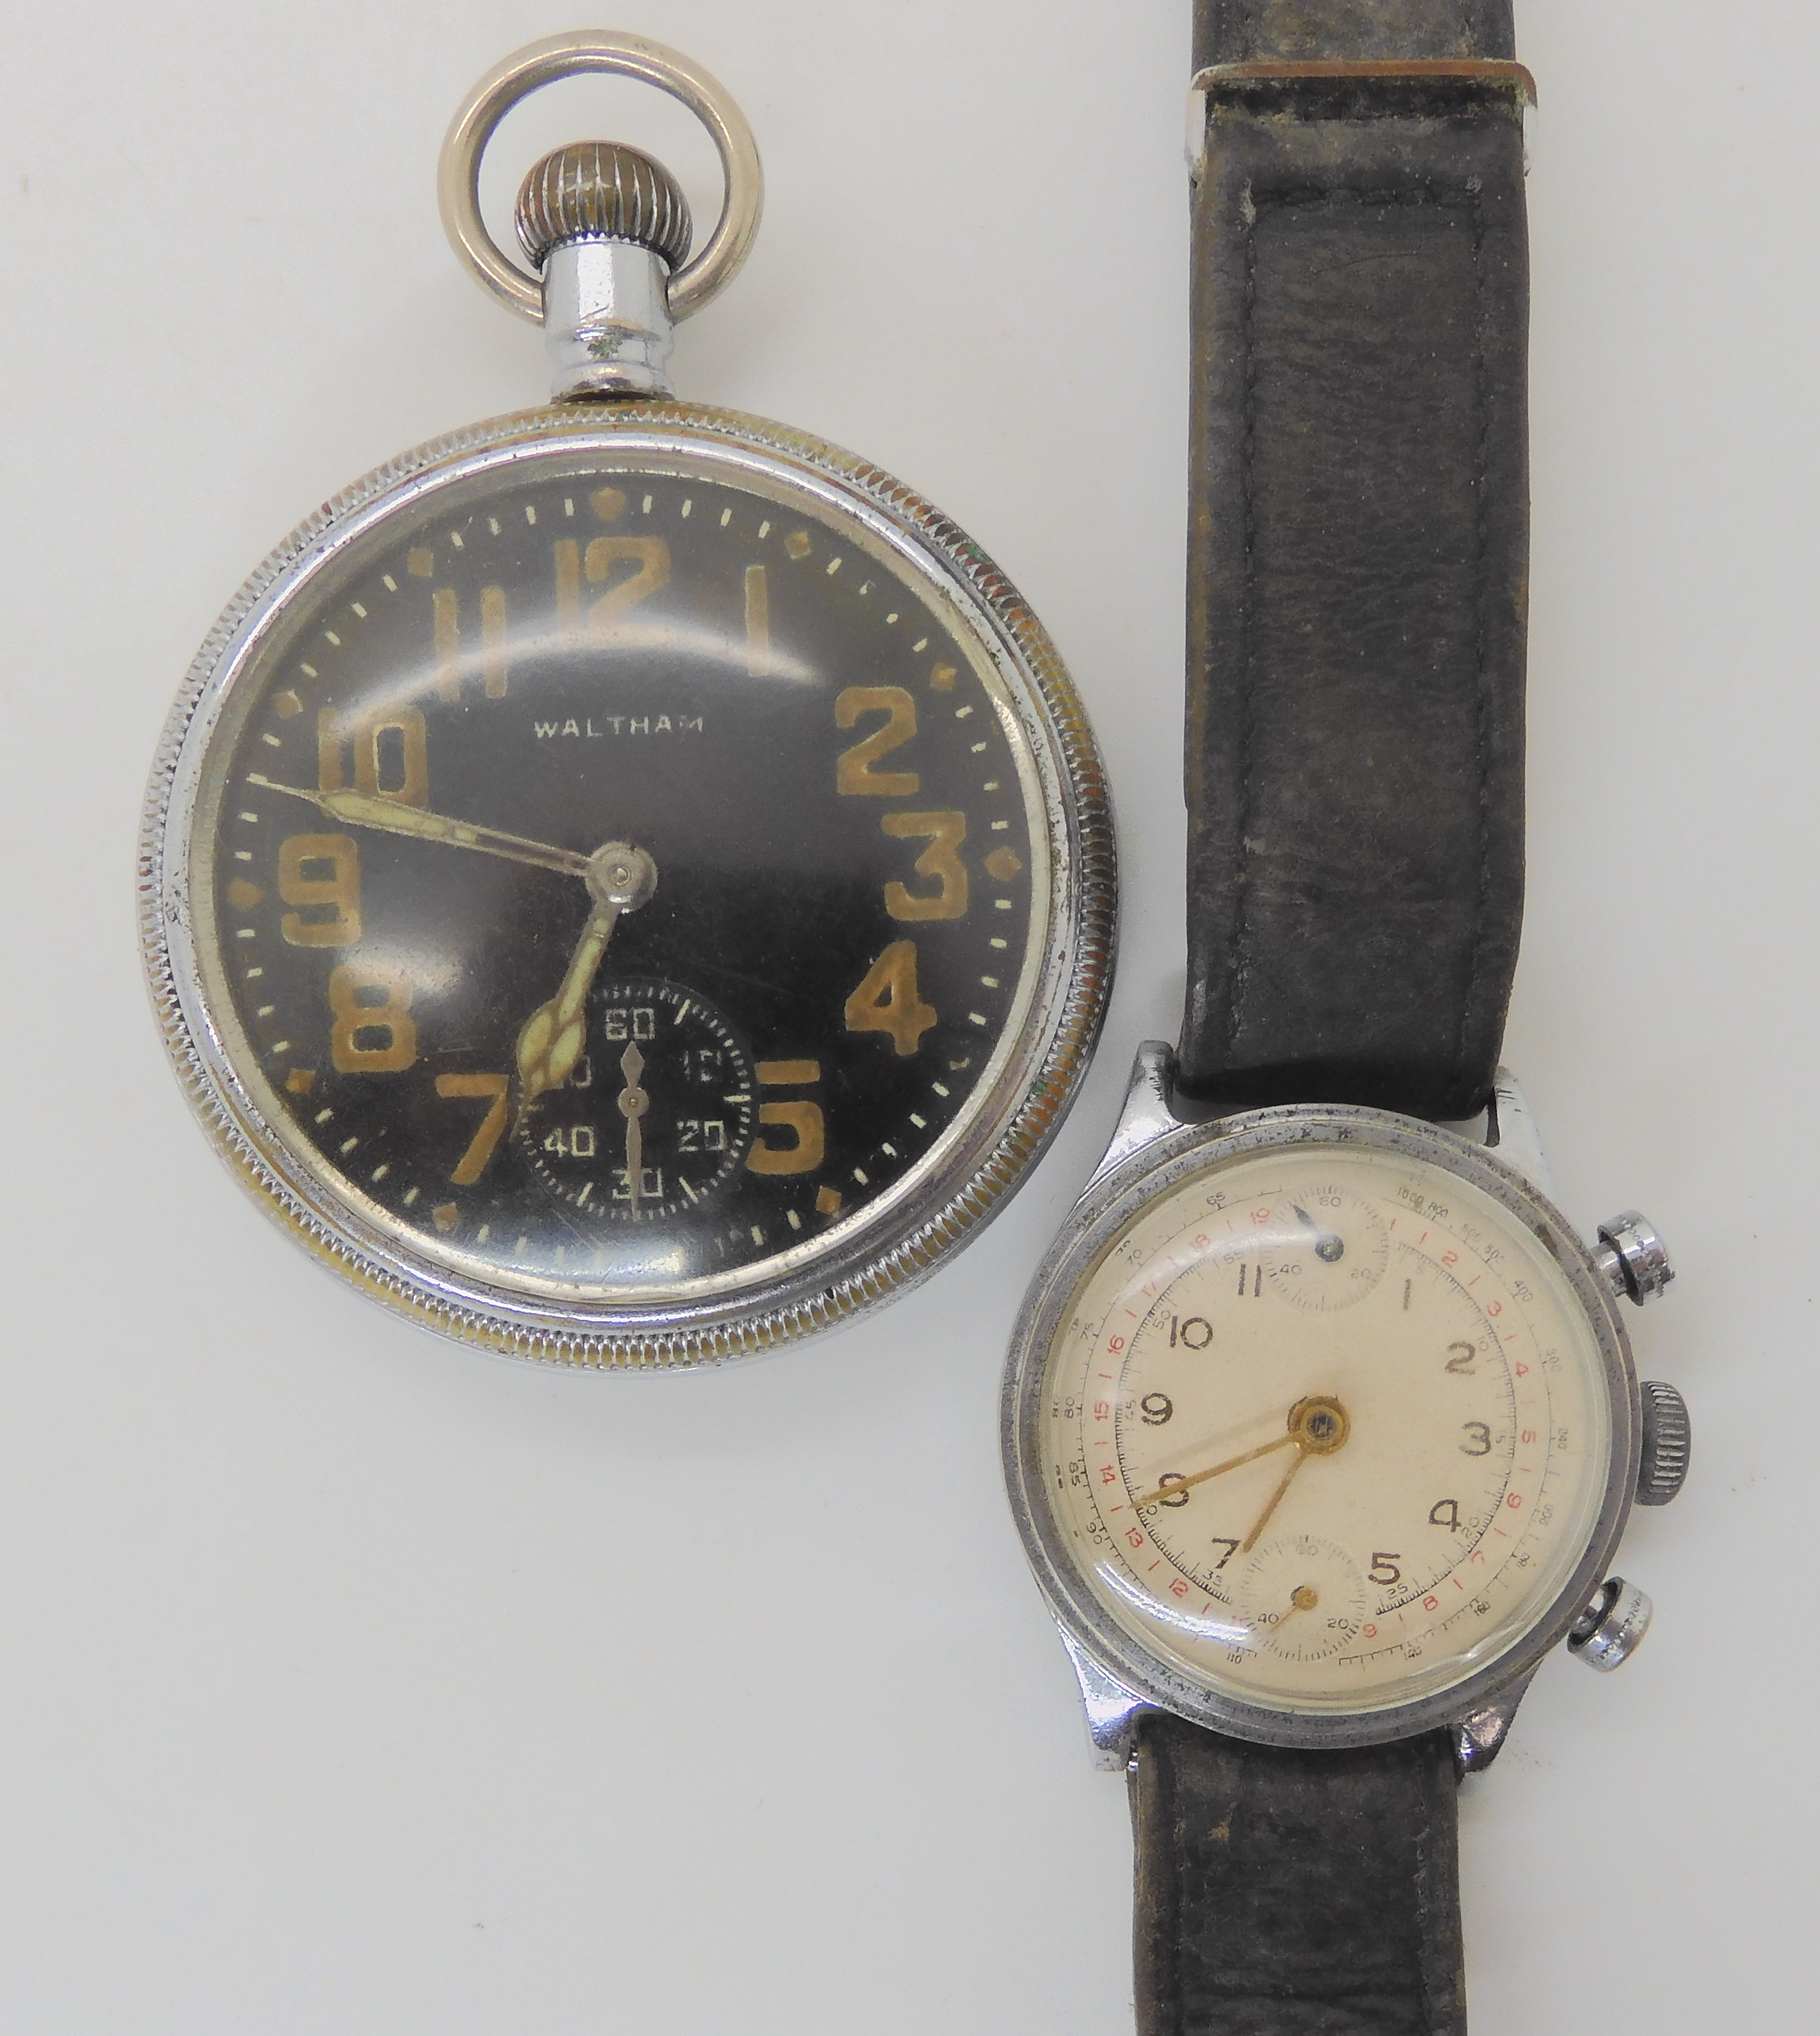 TWO MILITARY WATCHES a base metal Waltham pocket watch with a black dial subsidiary seconds dial and